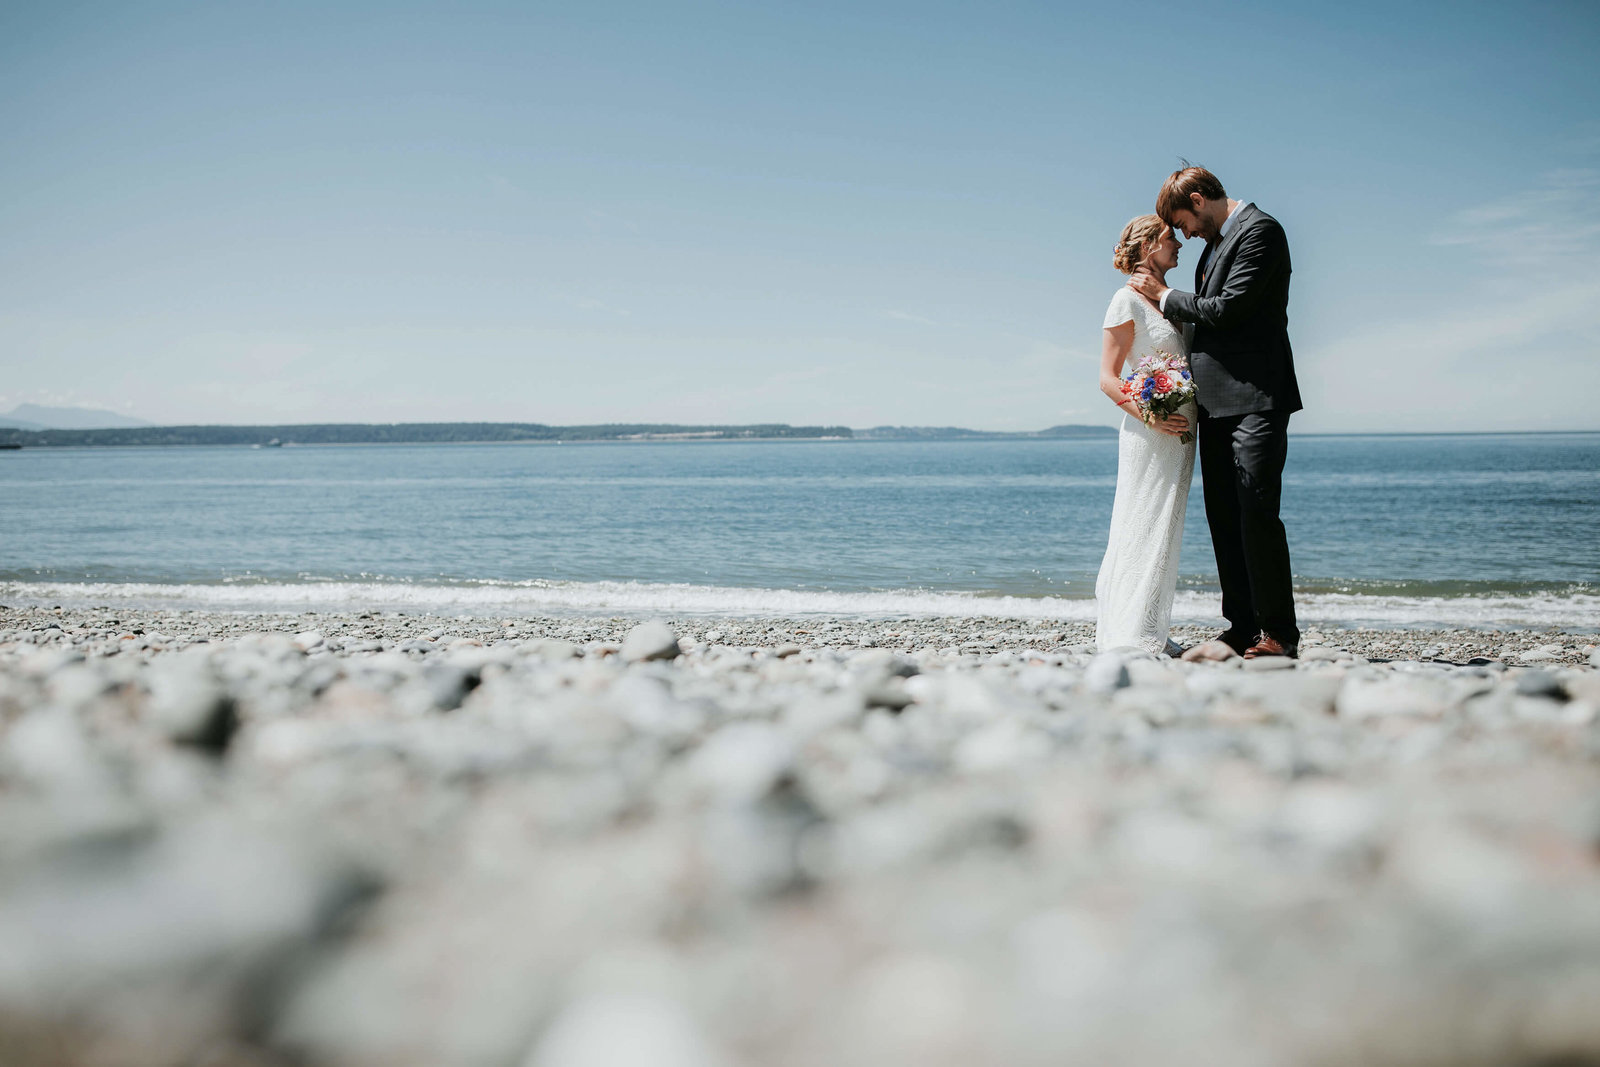 Whidbey-Island-wedding-Sarah+Charlie-Seattle-Highlights-by-Adina-Preston-Photography-2019-68